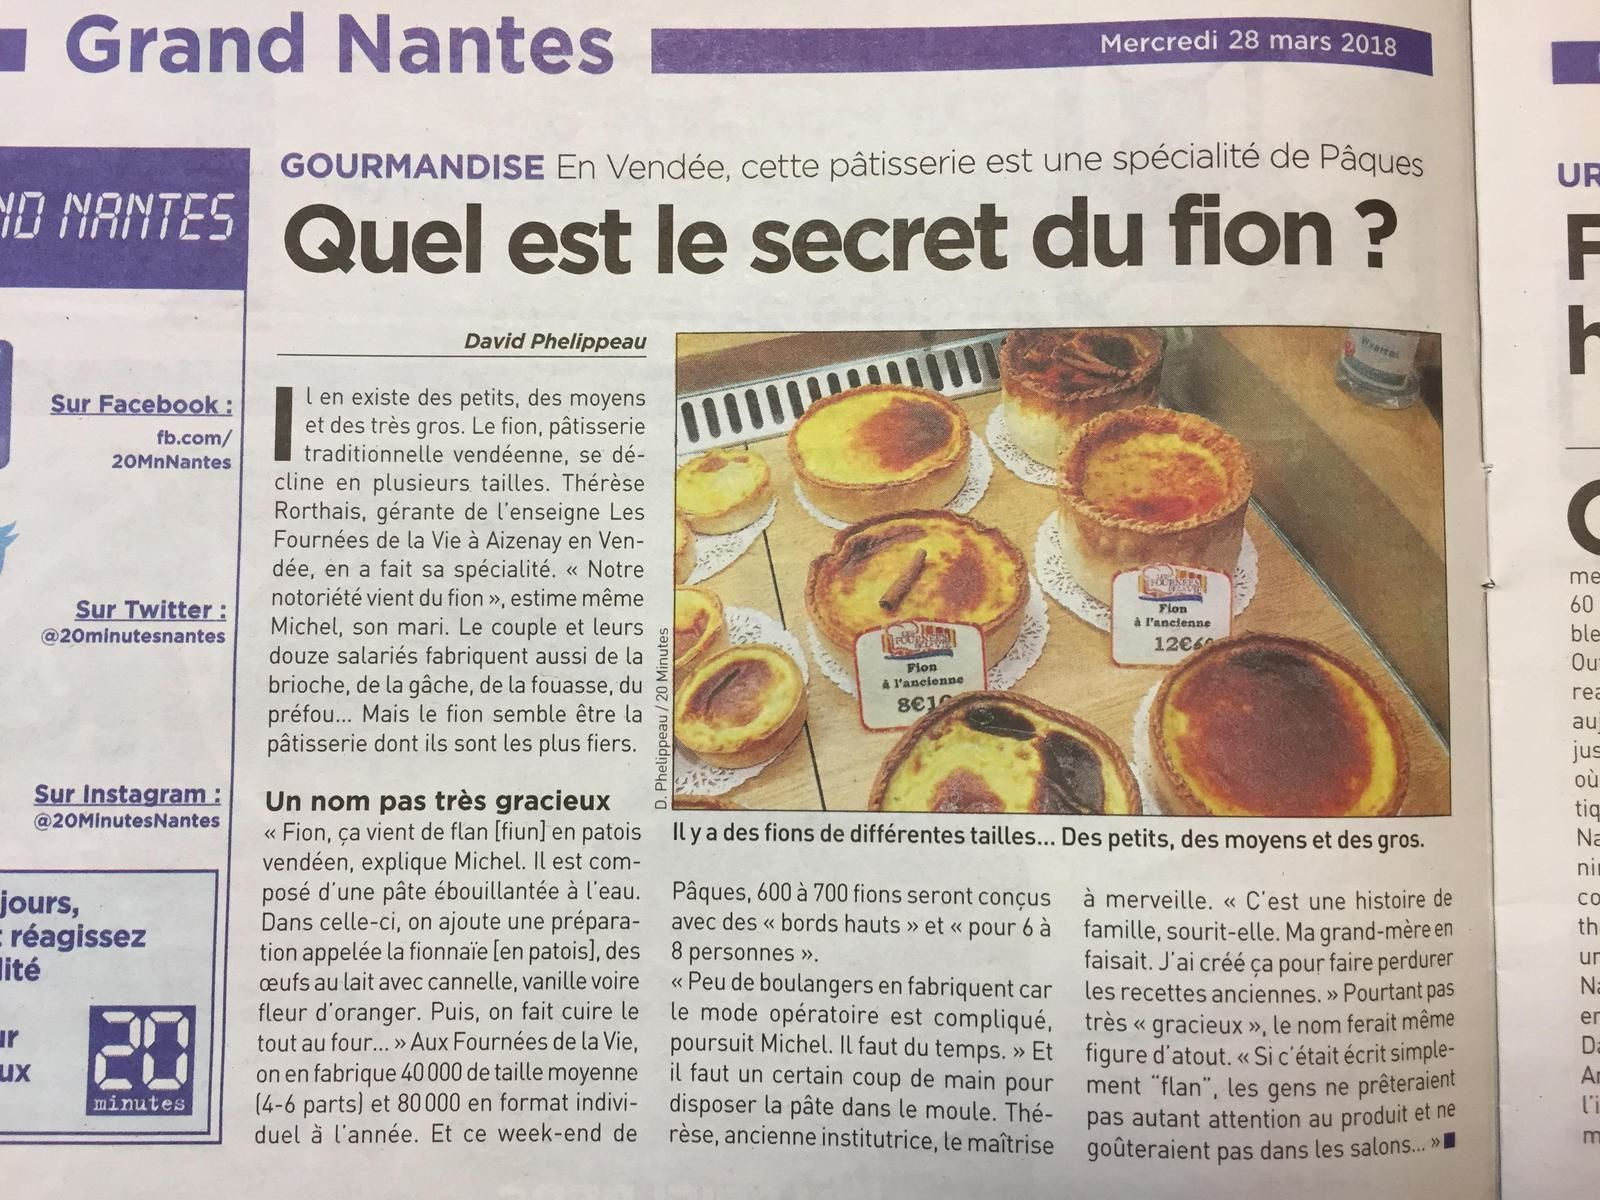 Le fion et son secret